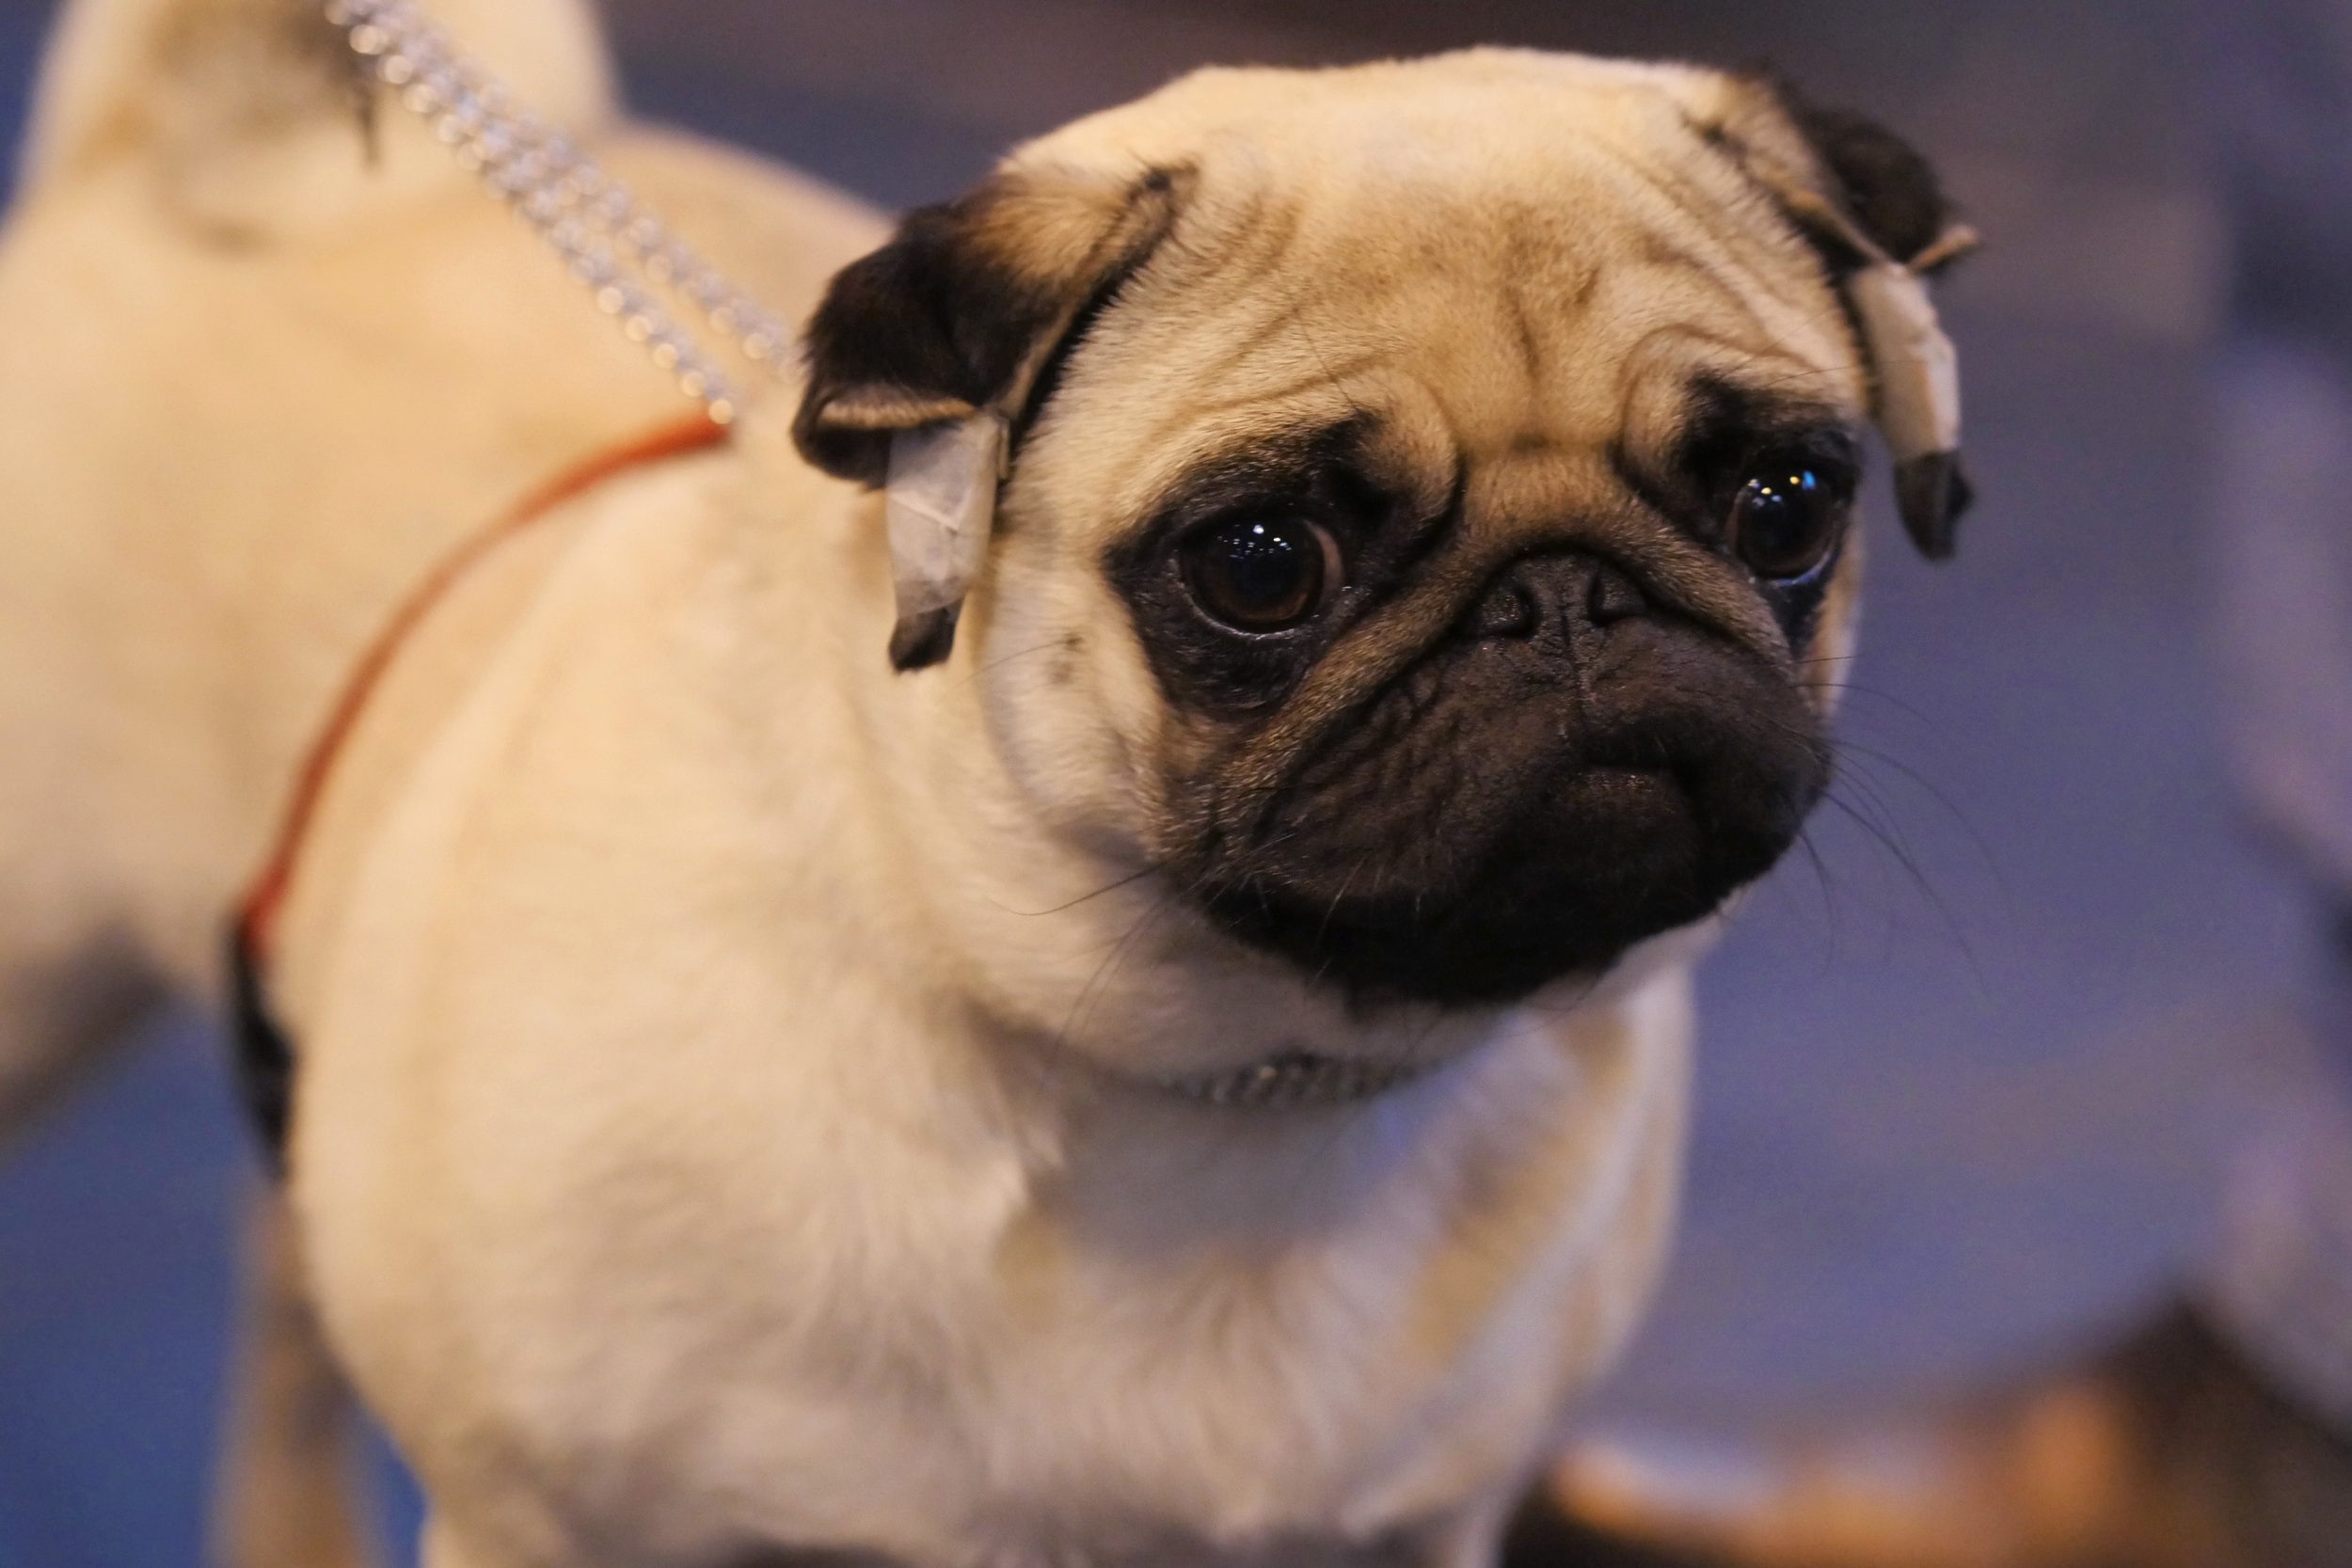 And finally the pug - one of the most popular breeds in the UK!